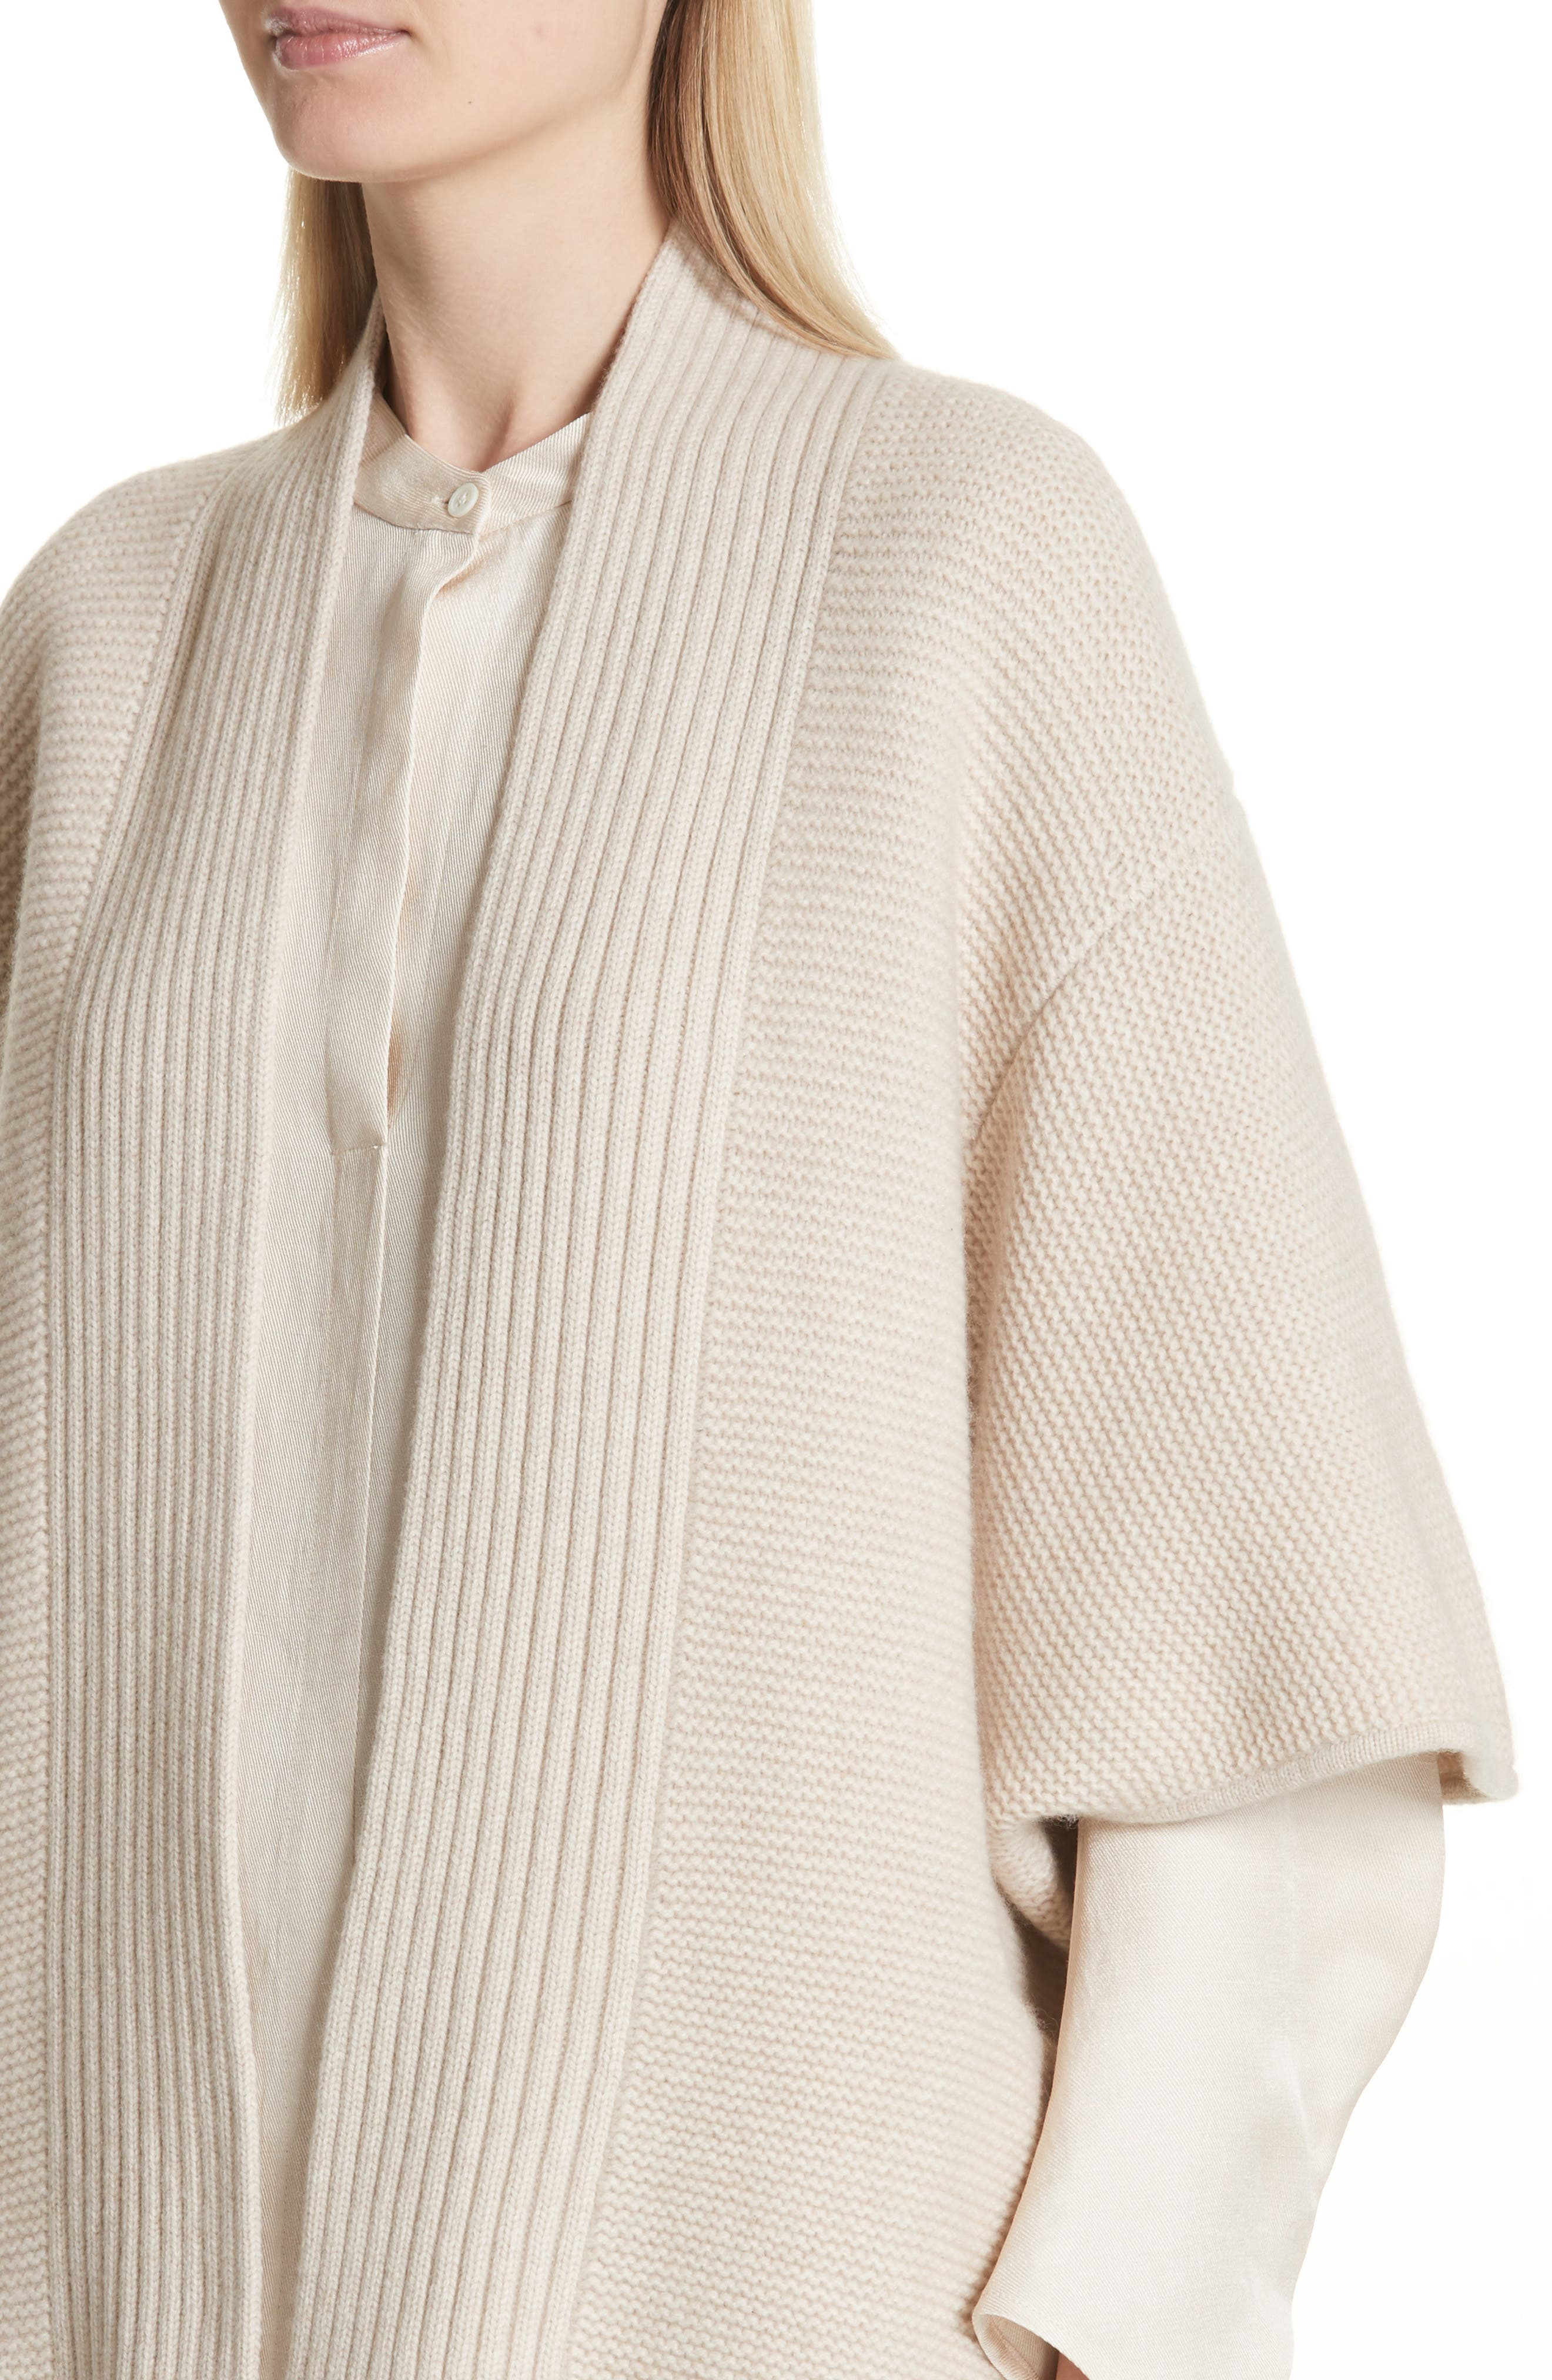 Cashmere & Merino Wool Cardigan,                             Alternate thumbnail 4, color,